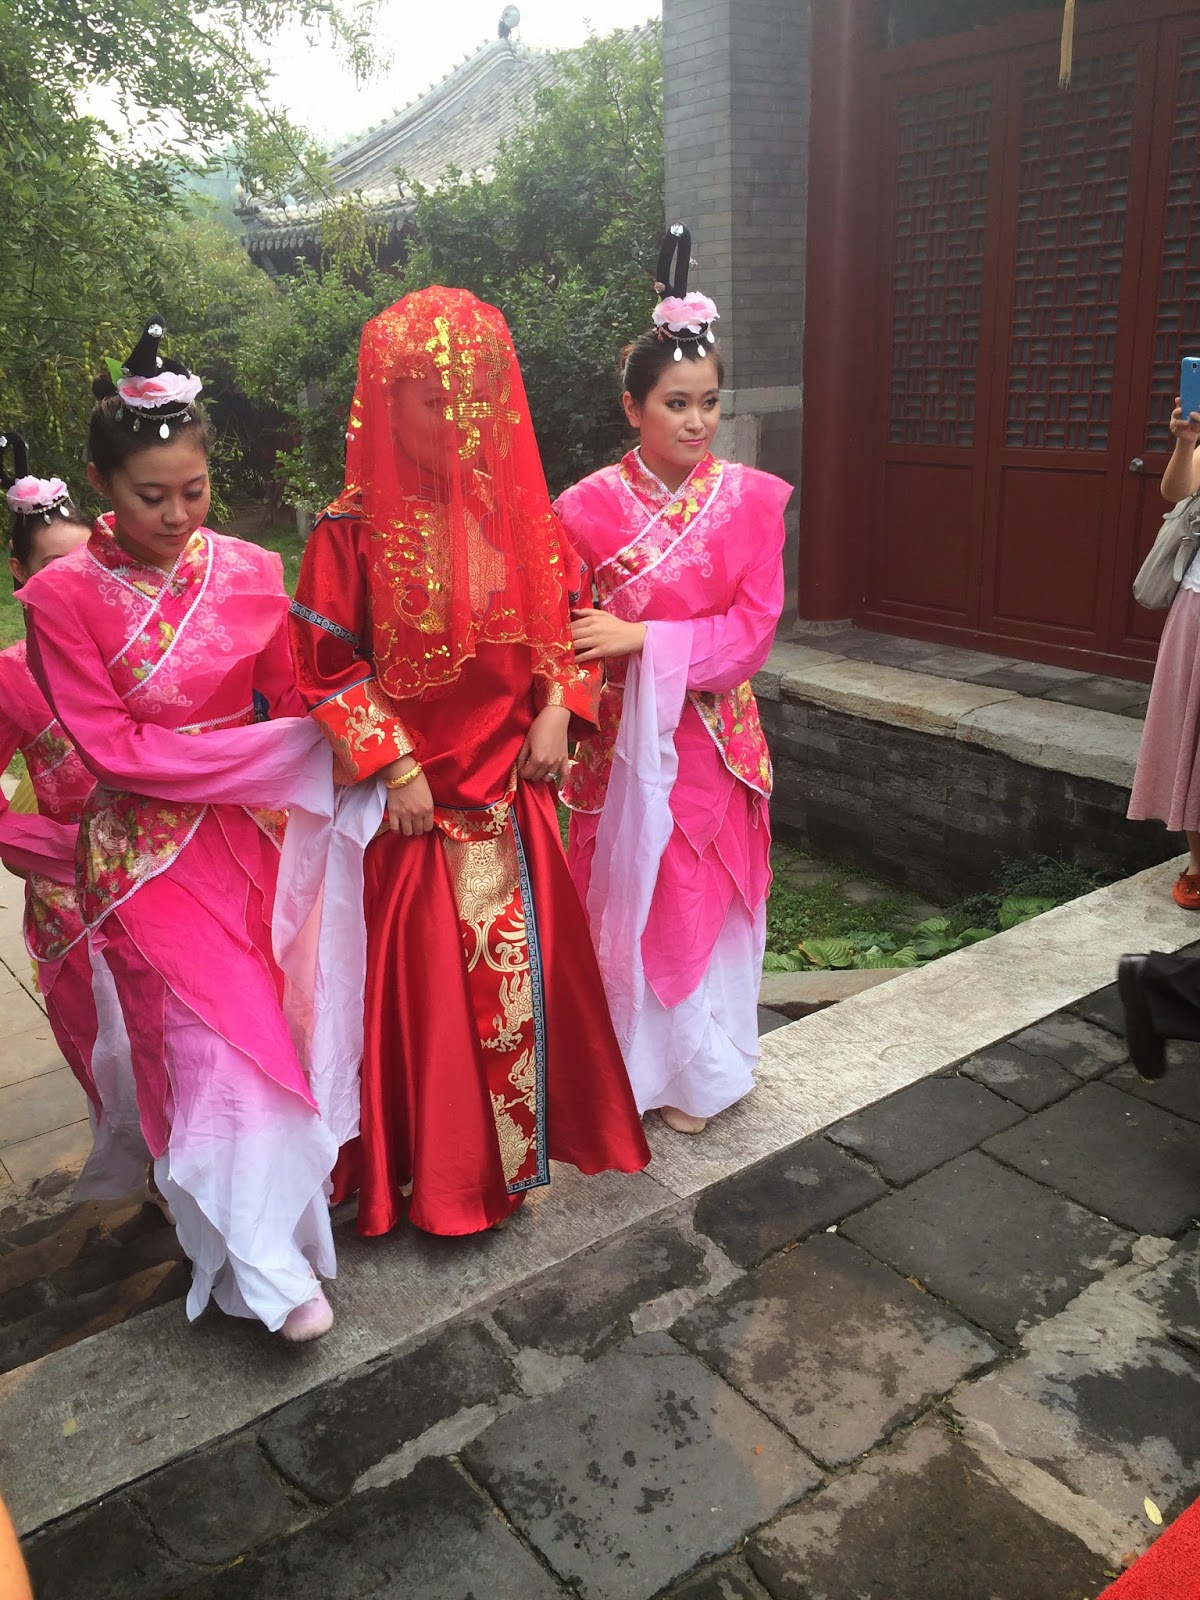 A Traditional Chinese Wedding in Beijing | Charlie, Distracted